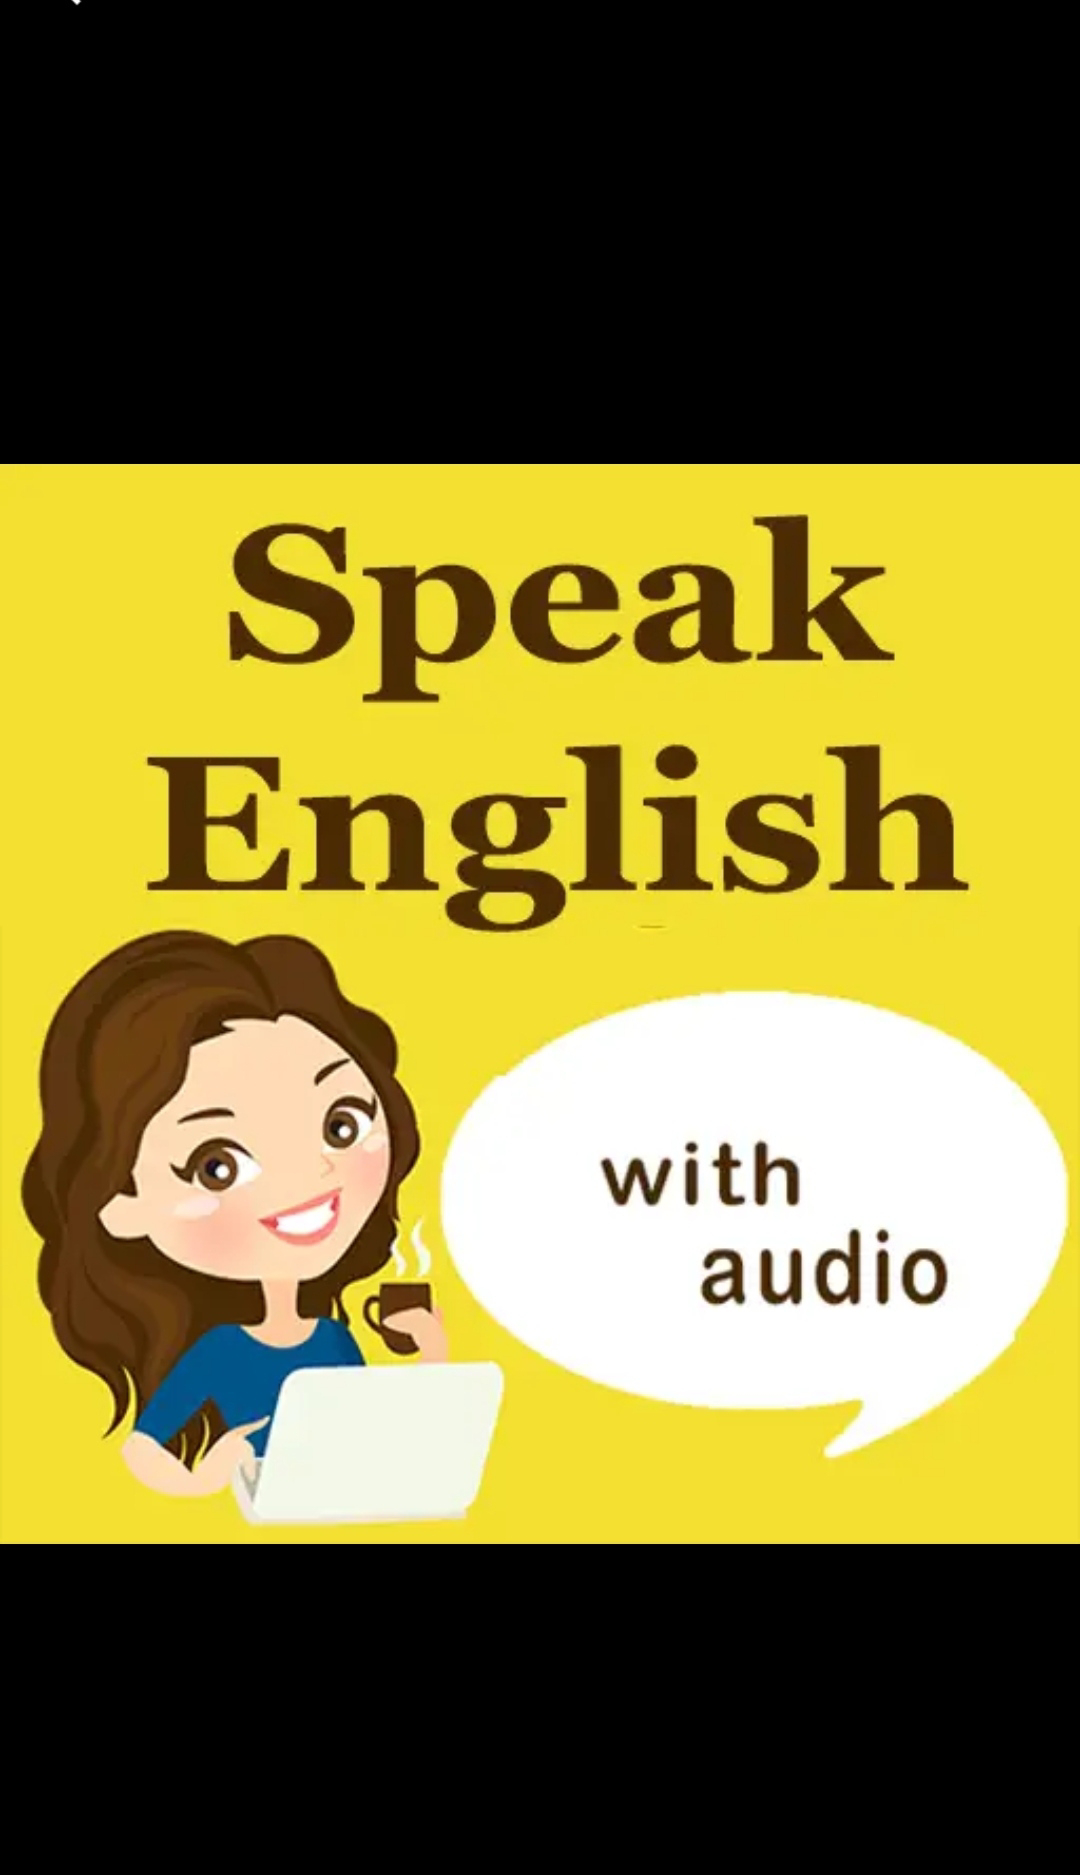 English learning app: Only the essentials without wasting time.